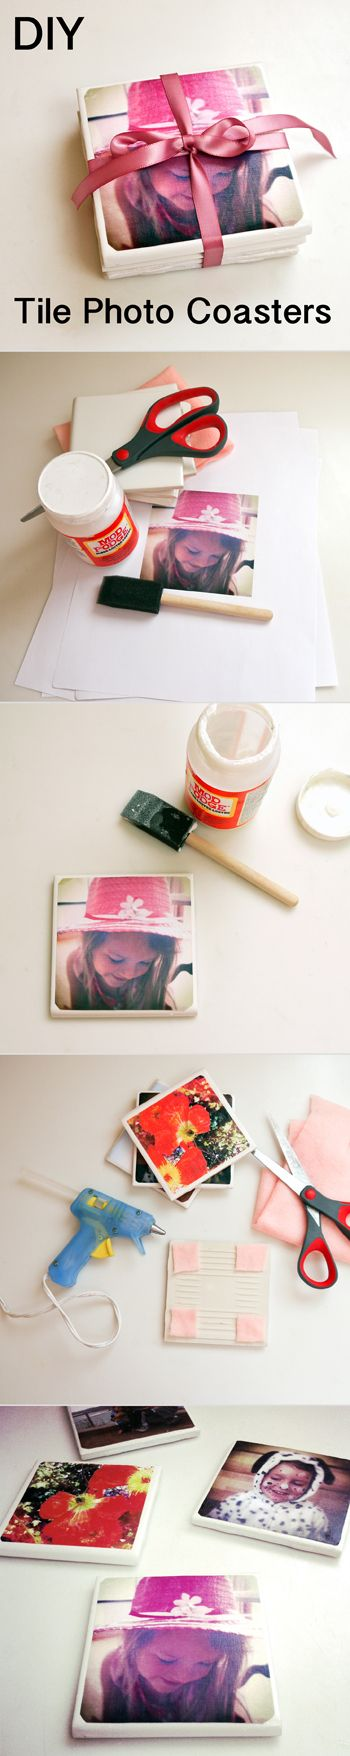 The Perfect Personalized Gift: DIY Tile Photo Coasters.